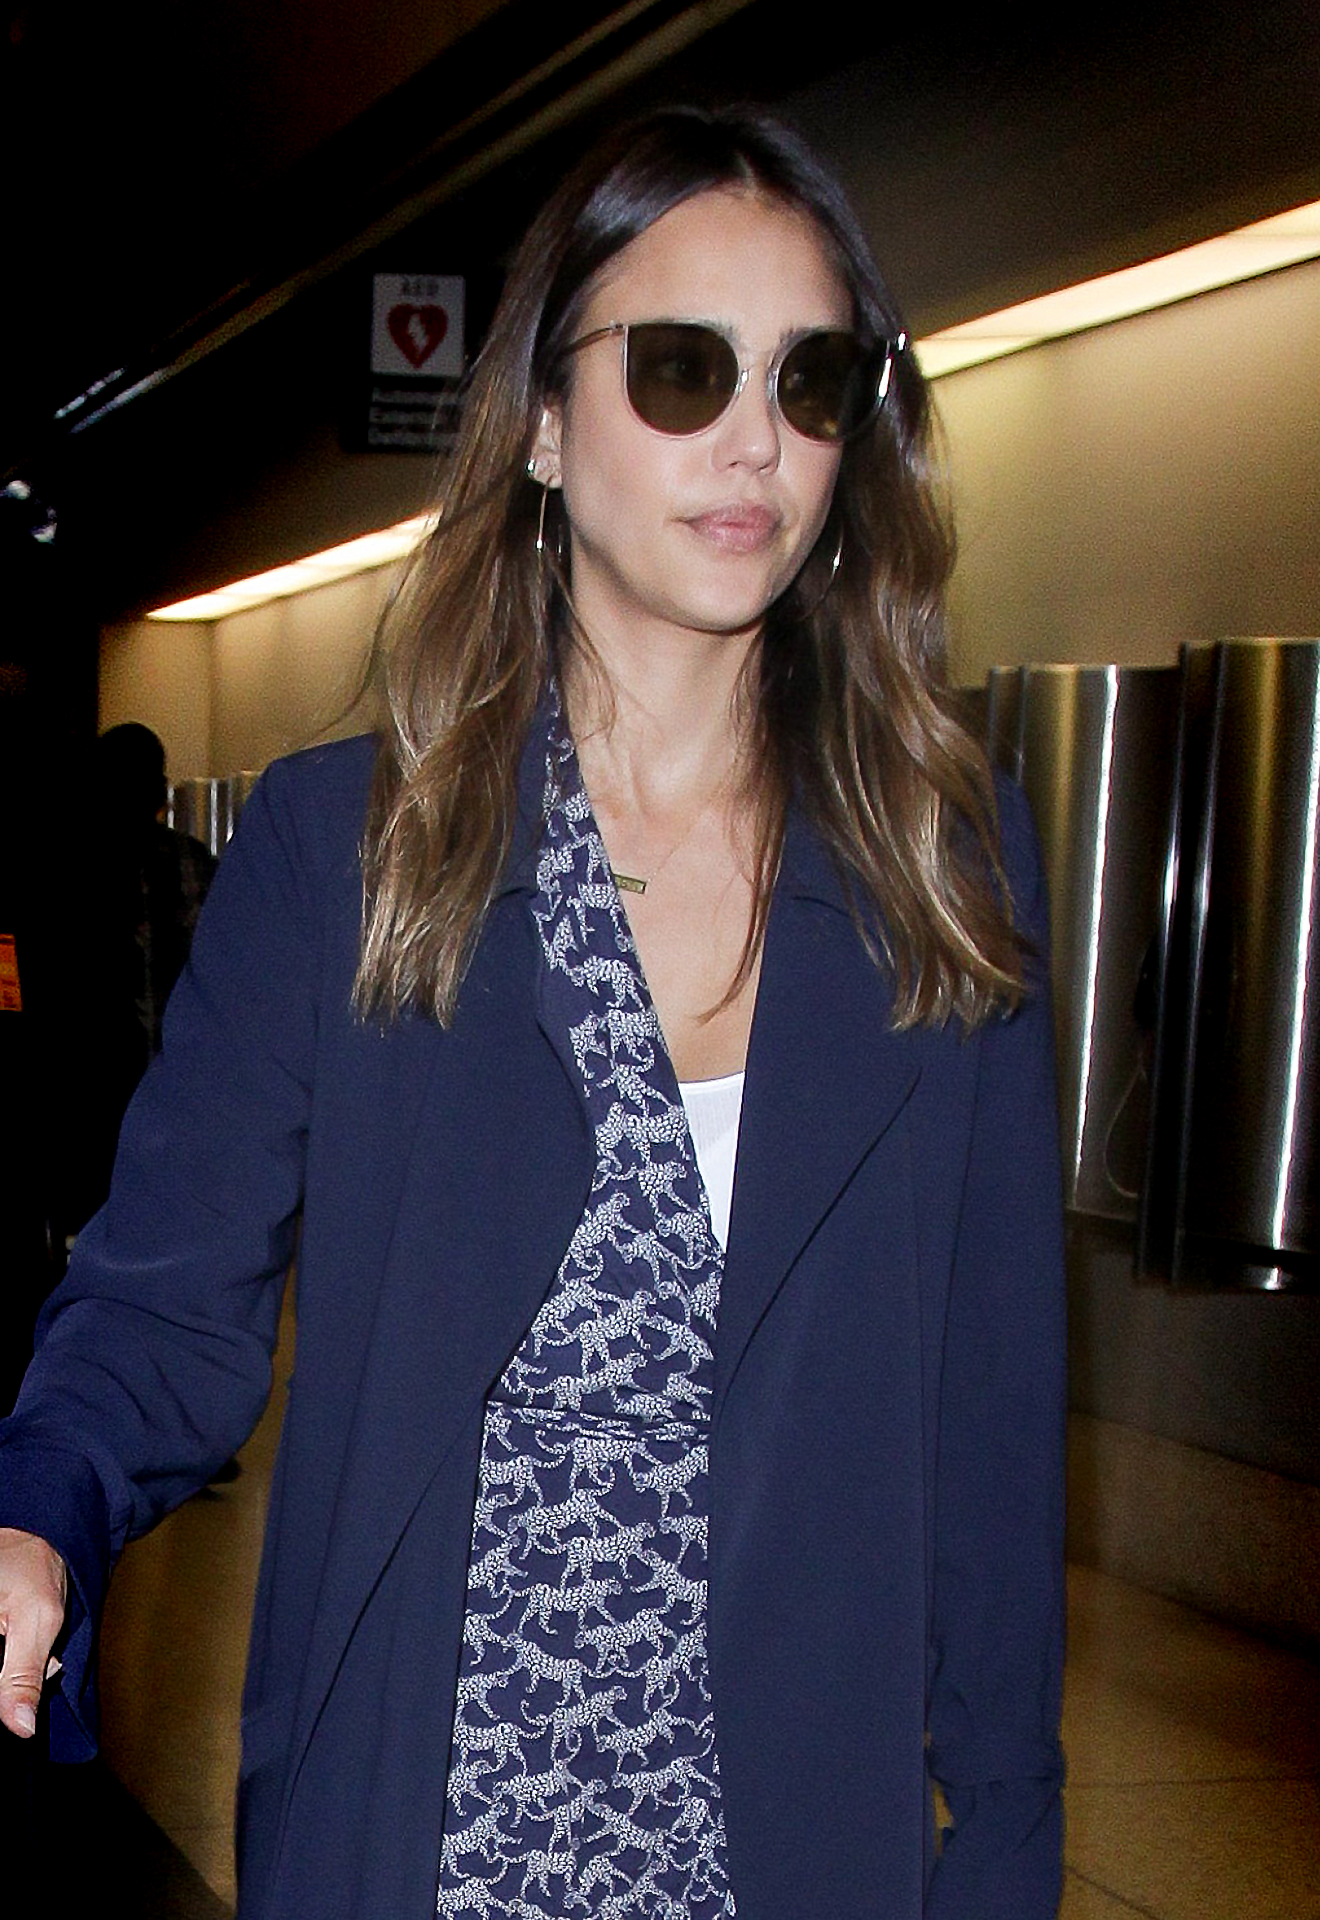 Jessica Alba flying under the radar in LINDBERG sun titanium